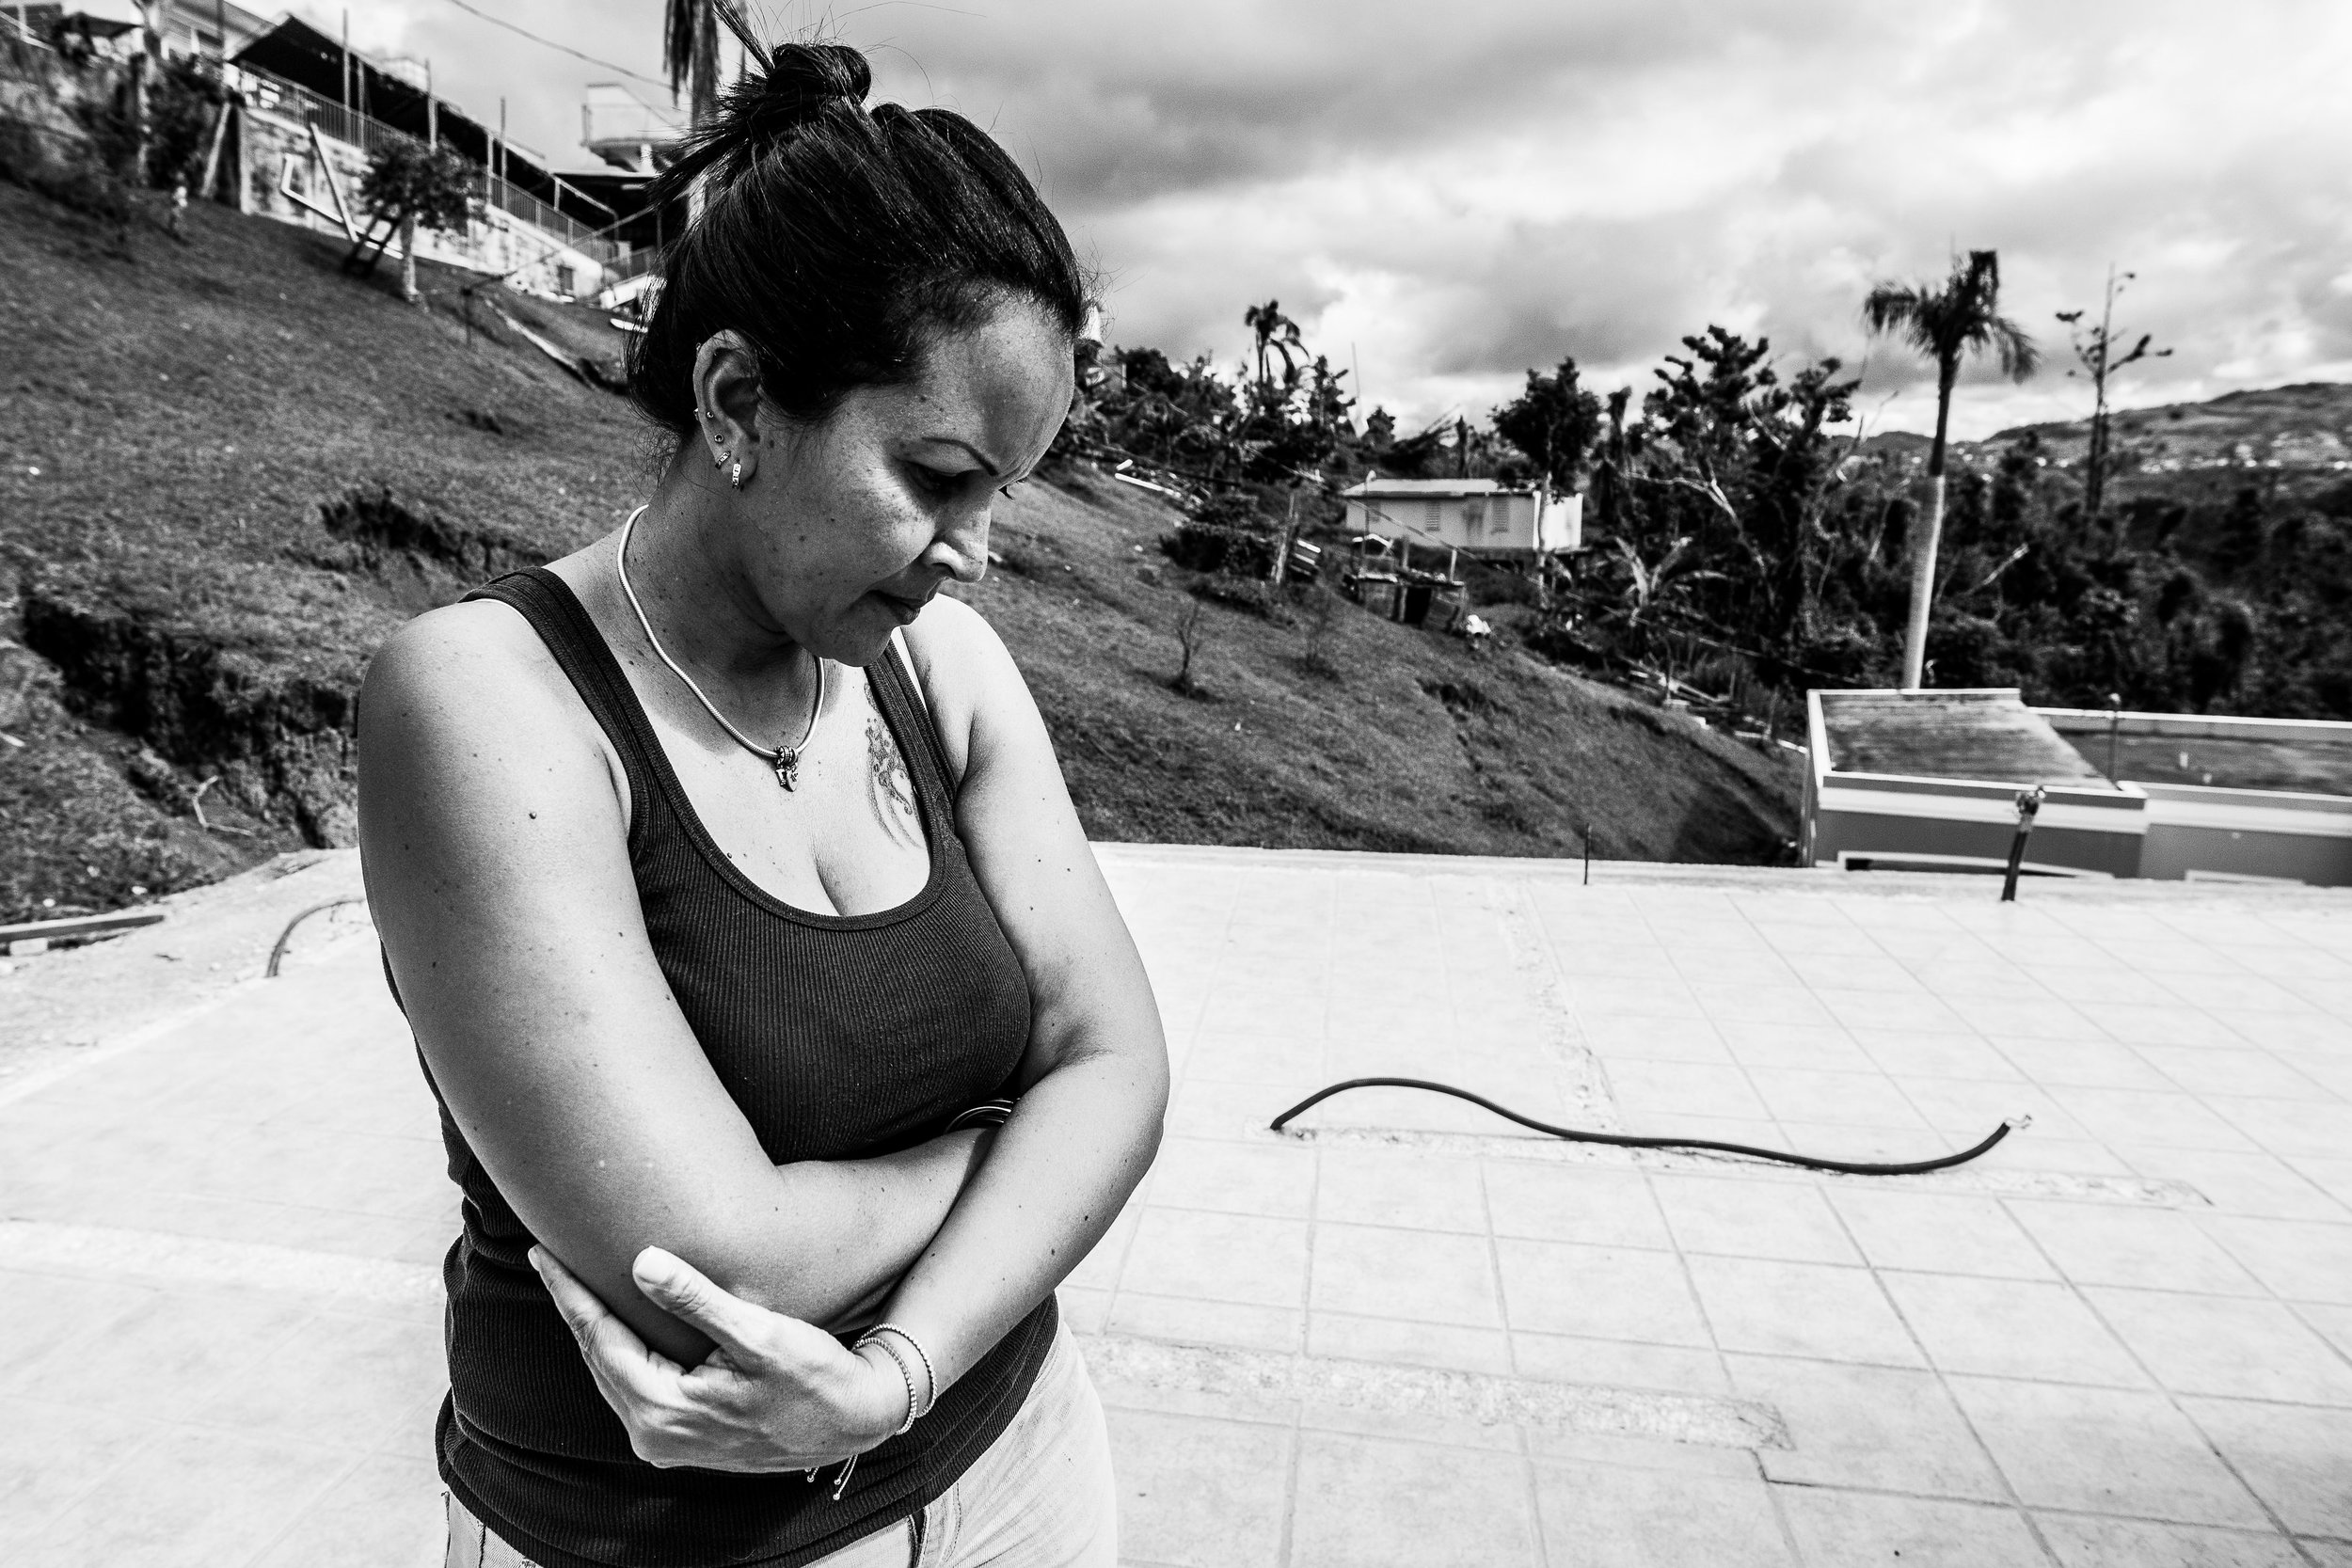 Photo credit: Katie Jett Walls  Denisse stands on the clean white tile floor of her home. No roof, and the only remaining walls are a cinderblock cubicle where the bathroom was. As her family weathered Hurricane Maria in the nearby home of her in-laws, Denisse's children watched their house lift off its foundation and plunge into the valley. Denisse ran a business from her house, so the equipment and supplies for her livelihood were lost with the house. The family is somewhat fortunate in that FEMA aid totals about $10,000. But, the estimate costs of rebuilding the home to be around $35,000. More troubling for the moment, though, is the fact that they ordered cinderblocks to begin rebuilding, and paid, in mid-November. The cinderblocks have yet to arrive, and they don't know when they will. It is Denise's understanding that FEMA has legal right to take any supplies that arrive in port, and she thinks maybe FEMA used their cinderblocks for something. Meanwhile, the price of basic building supplies has more than doubled on the island. She thinks maybe US suppliers (thanks to the Jones Act, all shipments of anything to Puerto Rico have to come from US suppliers in US ships) are hiking up prices of supplies to Puerto Rico.  UPDATE: in mid-February, 2018, the cinderblocks arrived. They came just a few days after electricity was restored on Denisse's entire street.